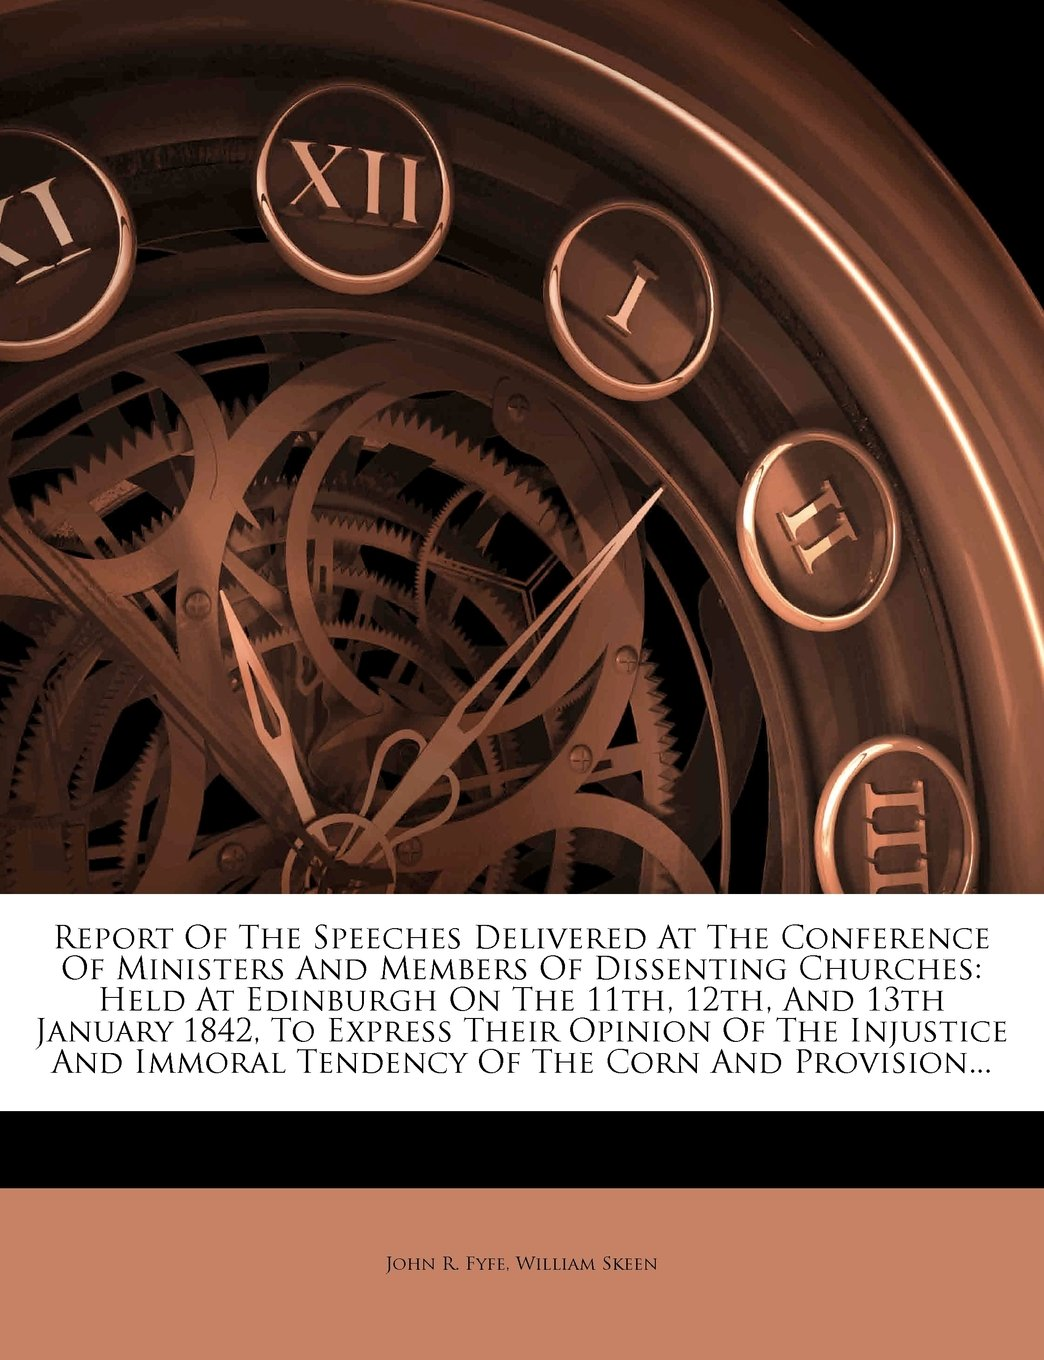 Download Report Of The Speeches Delivered At The Conference Of Ministers And Members Of Dissenting Churches: Held At Edinburgh On The 11th, 12th, And 13th ... Immoral Tendency Of The Corn And Provision... pdf